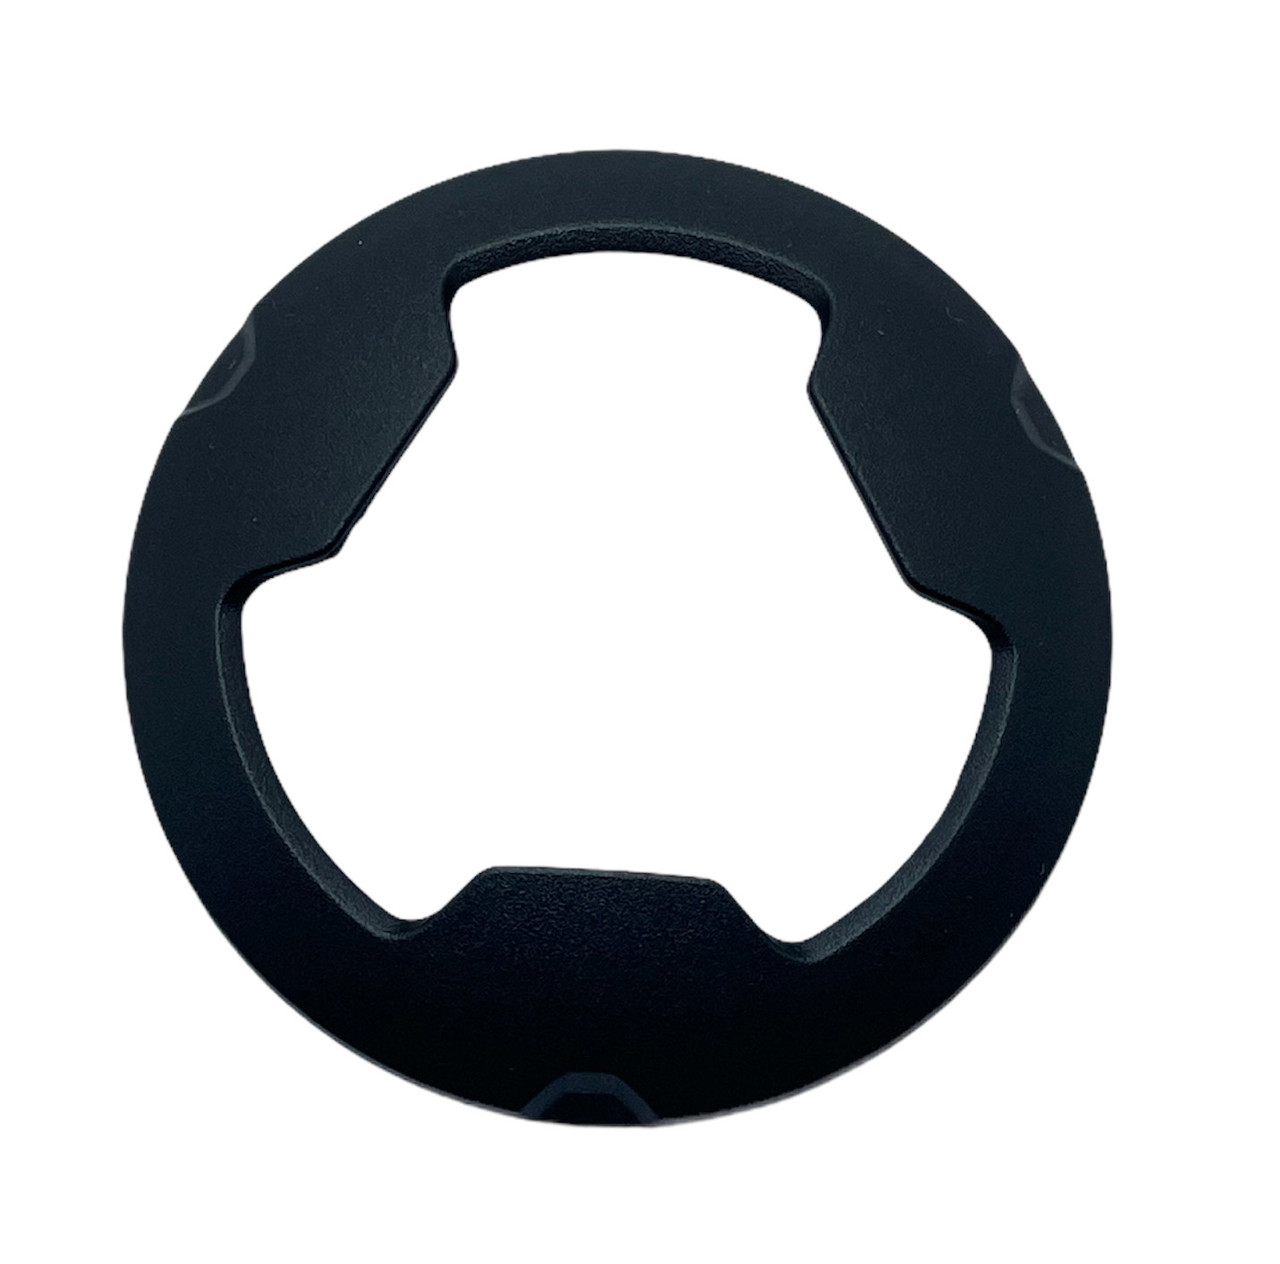 Diaphragm Cover Ring Second Stage Oceanic Alpha 10 Regulator 9869